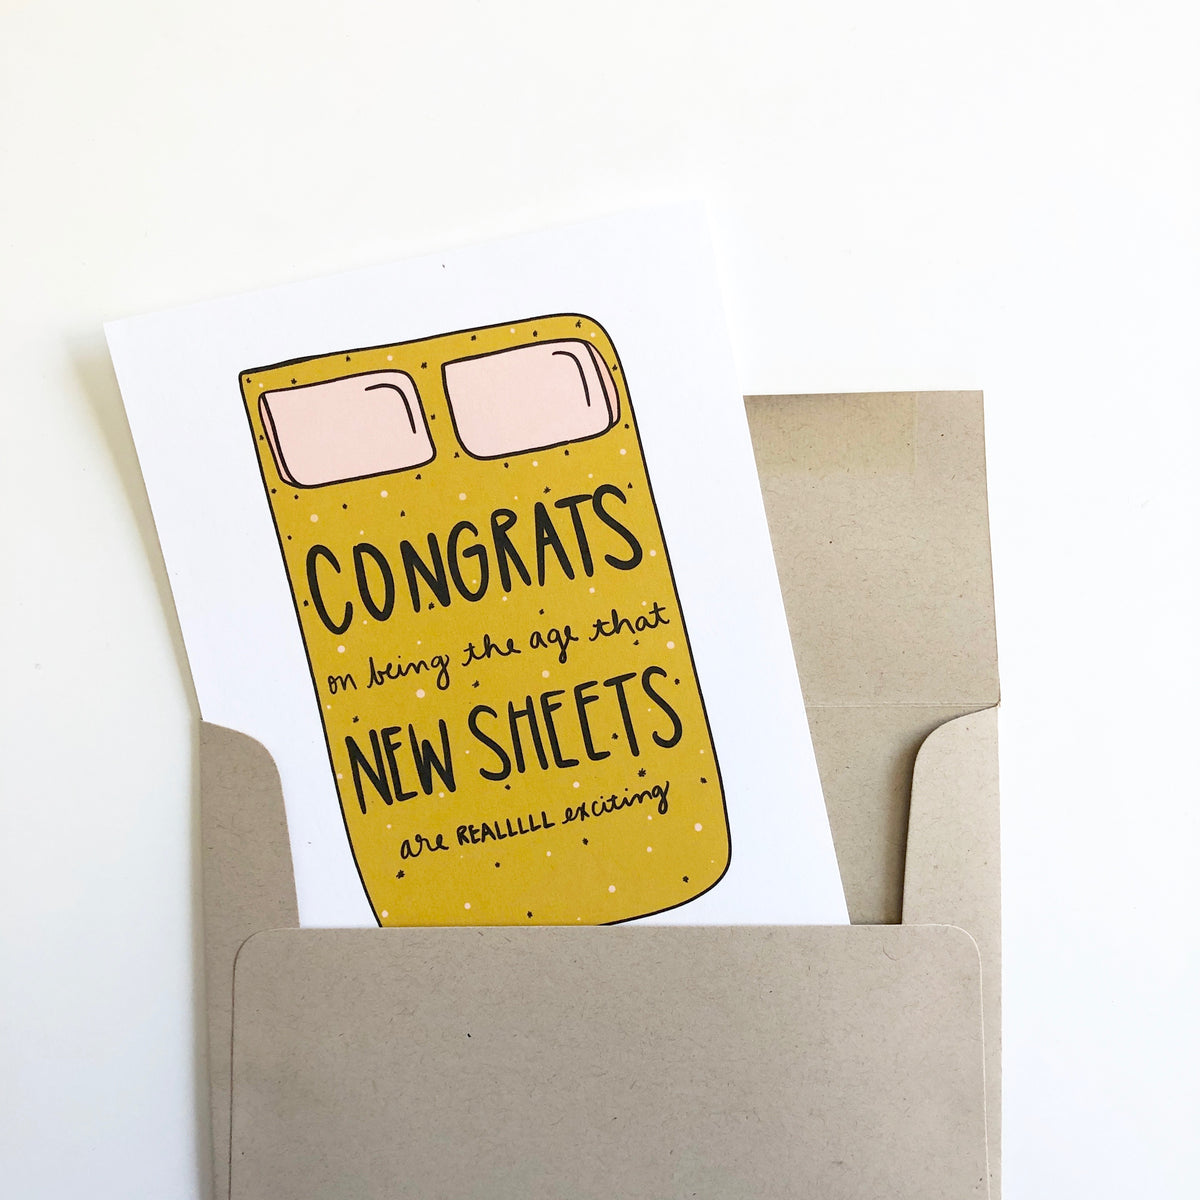 New Sheets Birthday Card